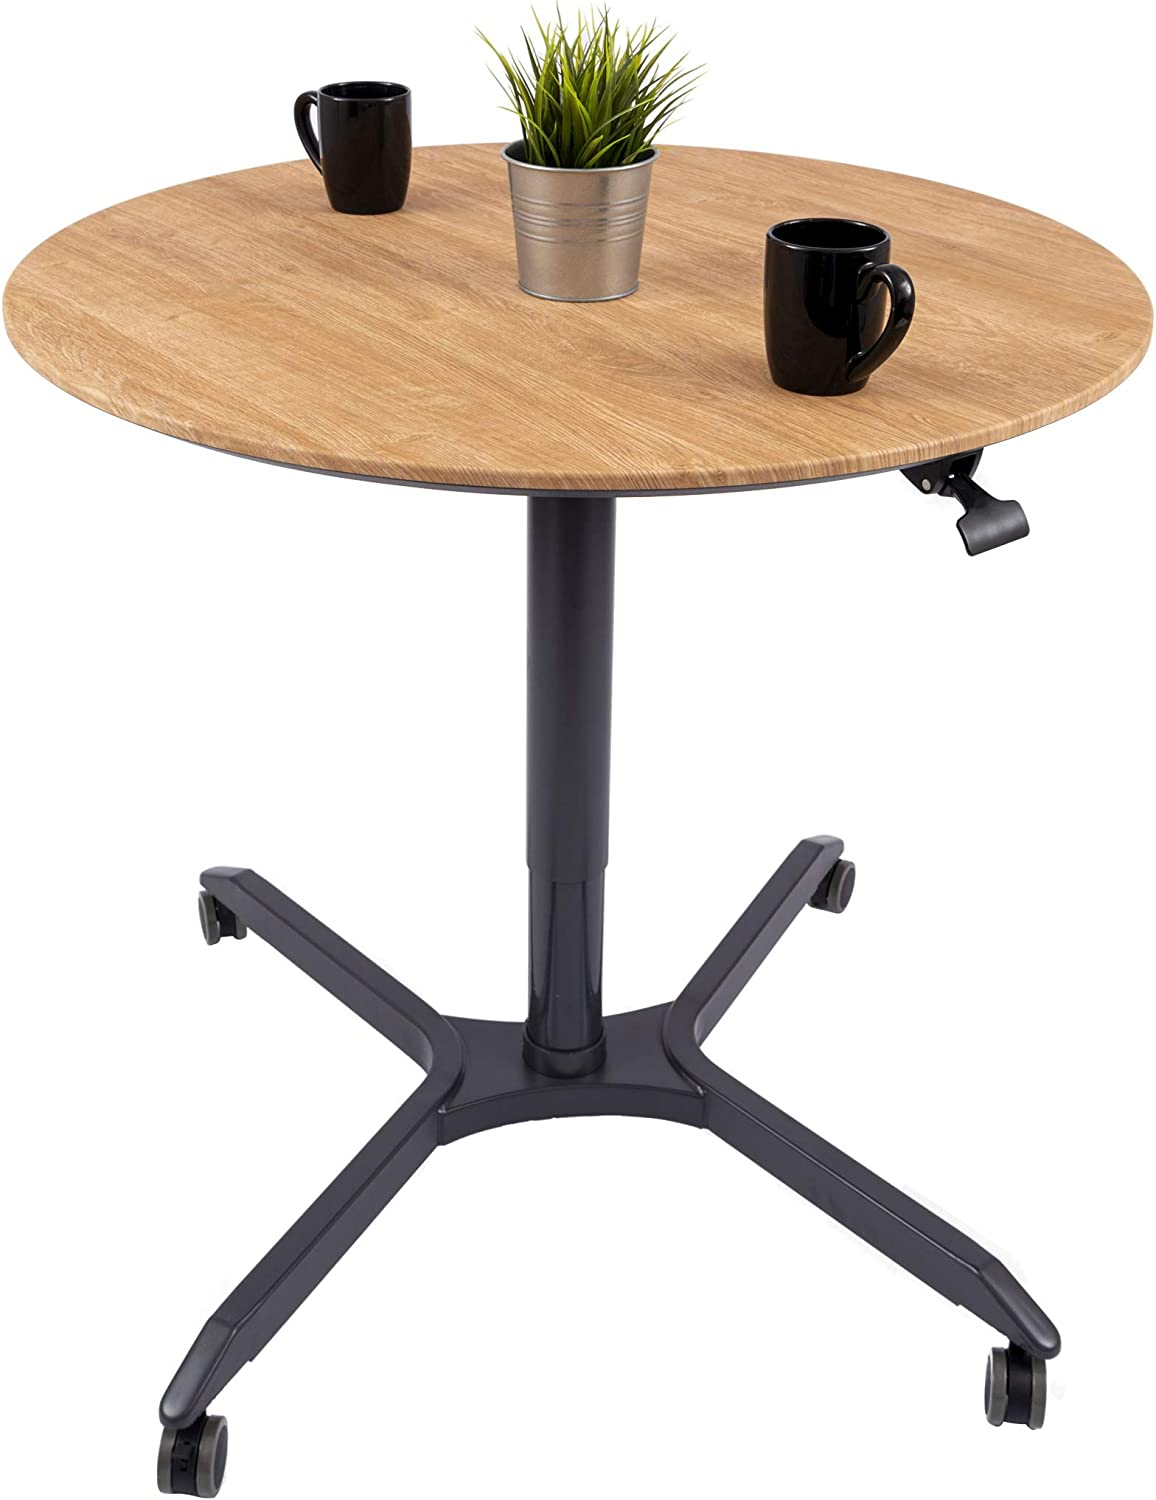 Pneumatic Adjustable-Height Cafe Table Breakroom Table – 35 , Charcoal Frame White Oak Top